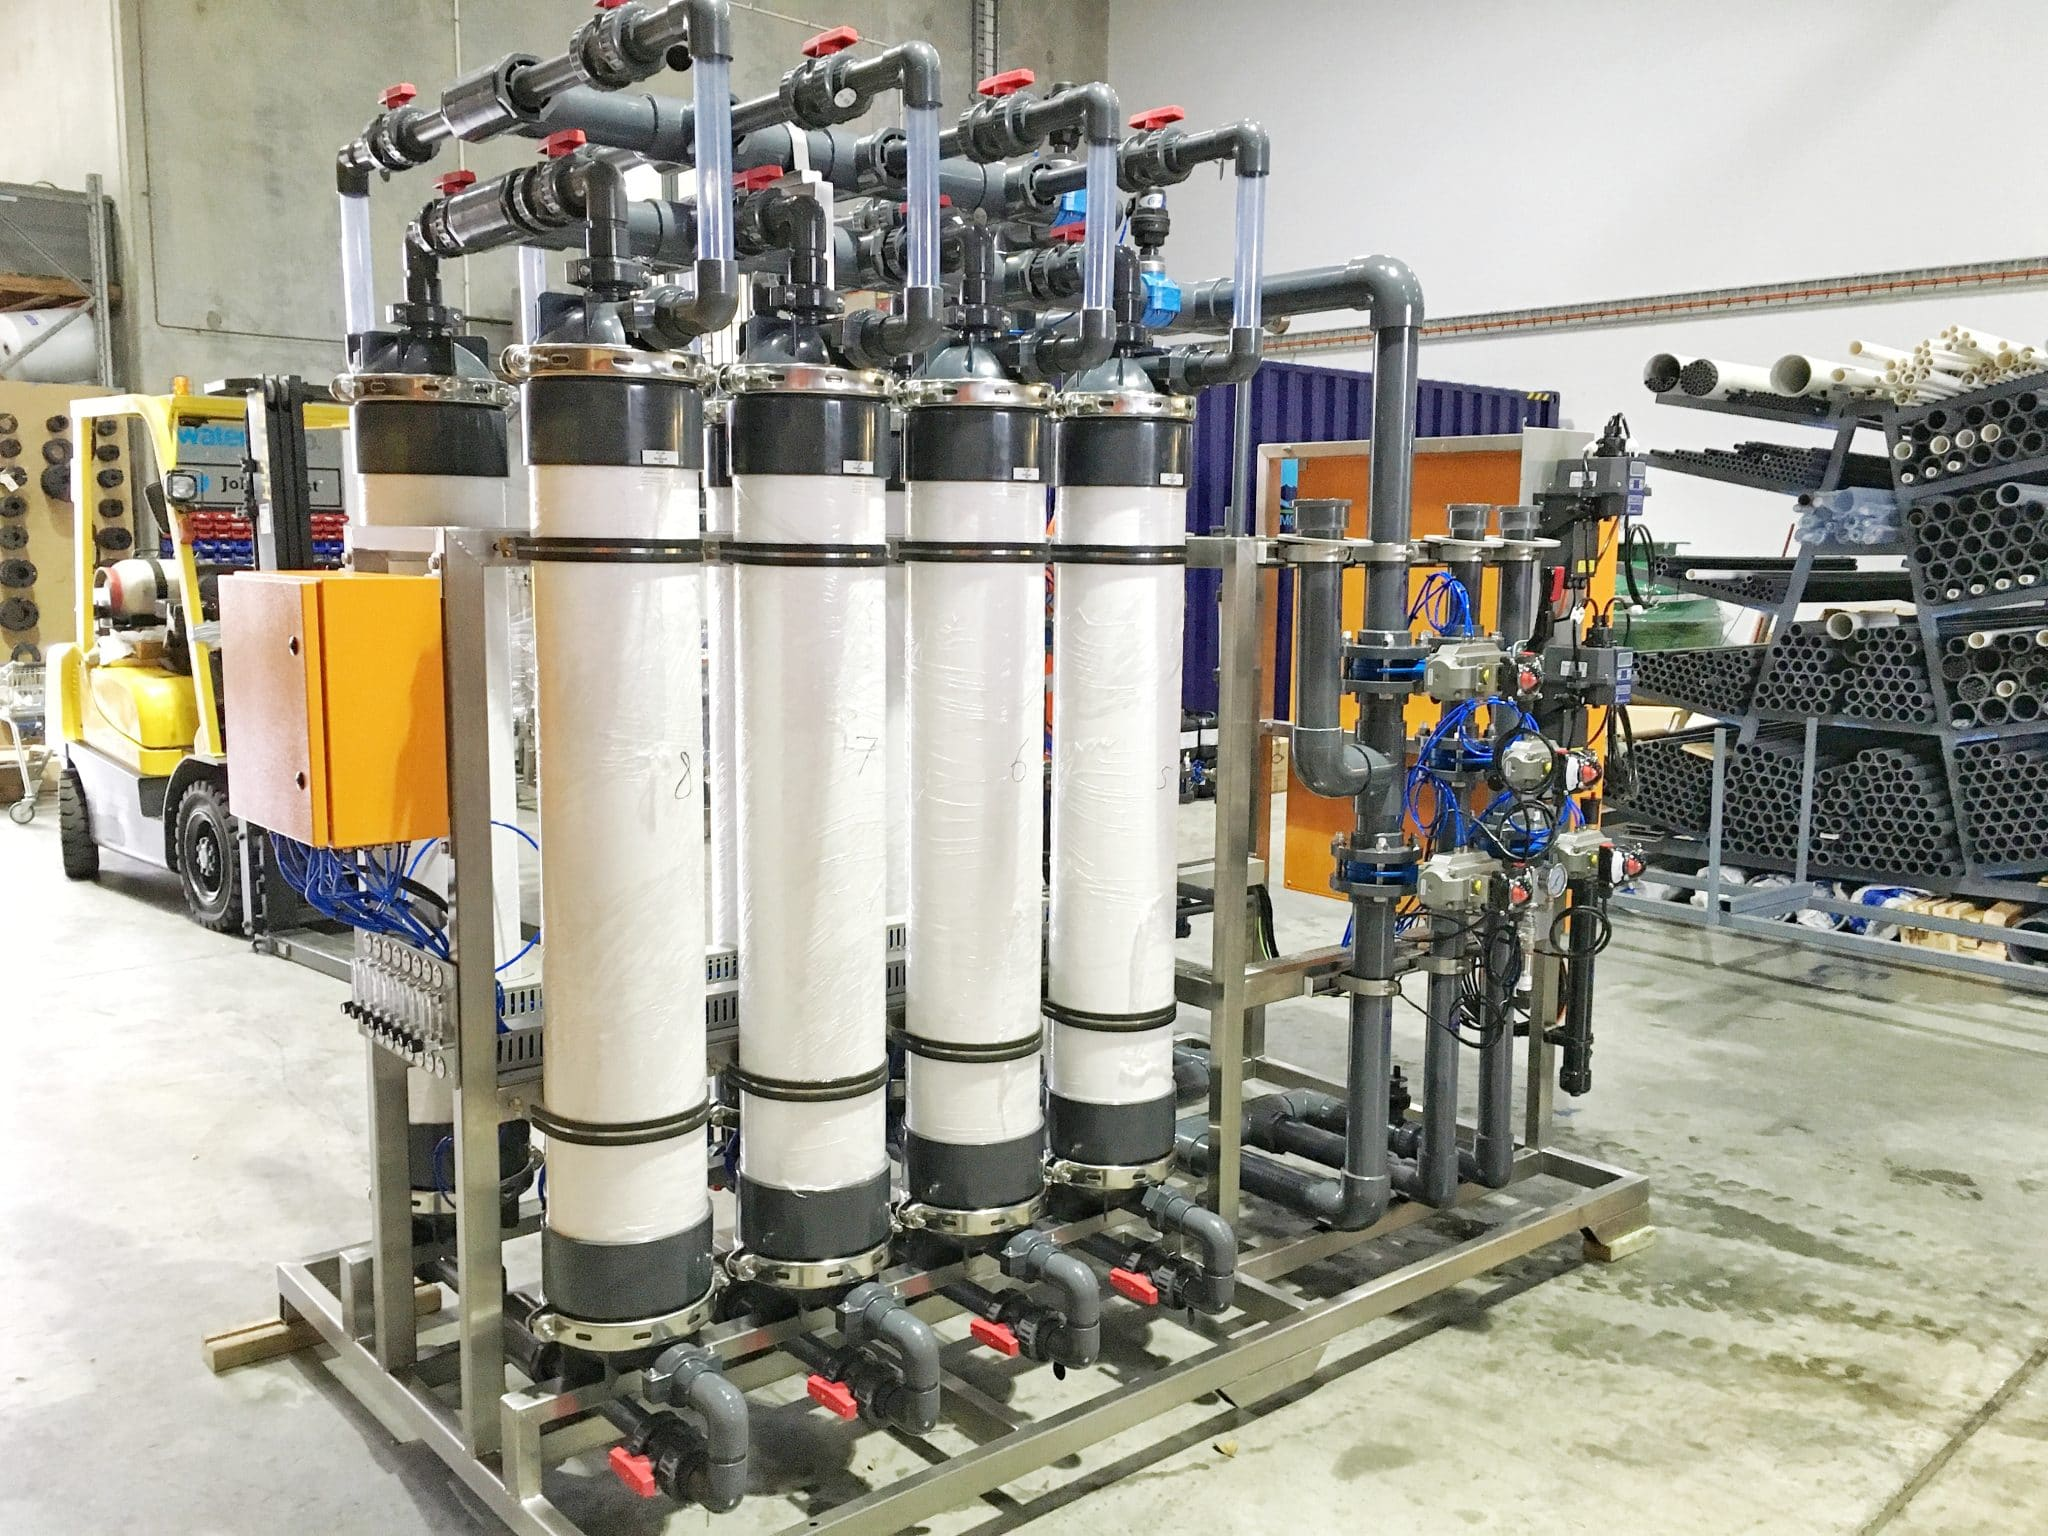 Wastewater Biological Treatment, Wastewater Biological Treatment and Ultrafiltration System